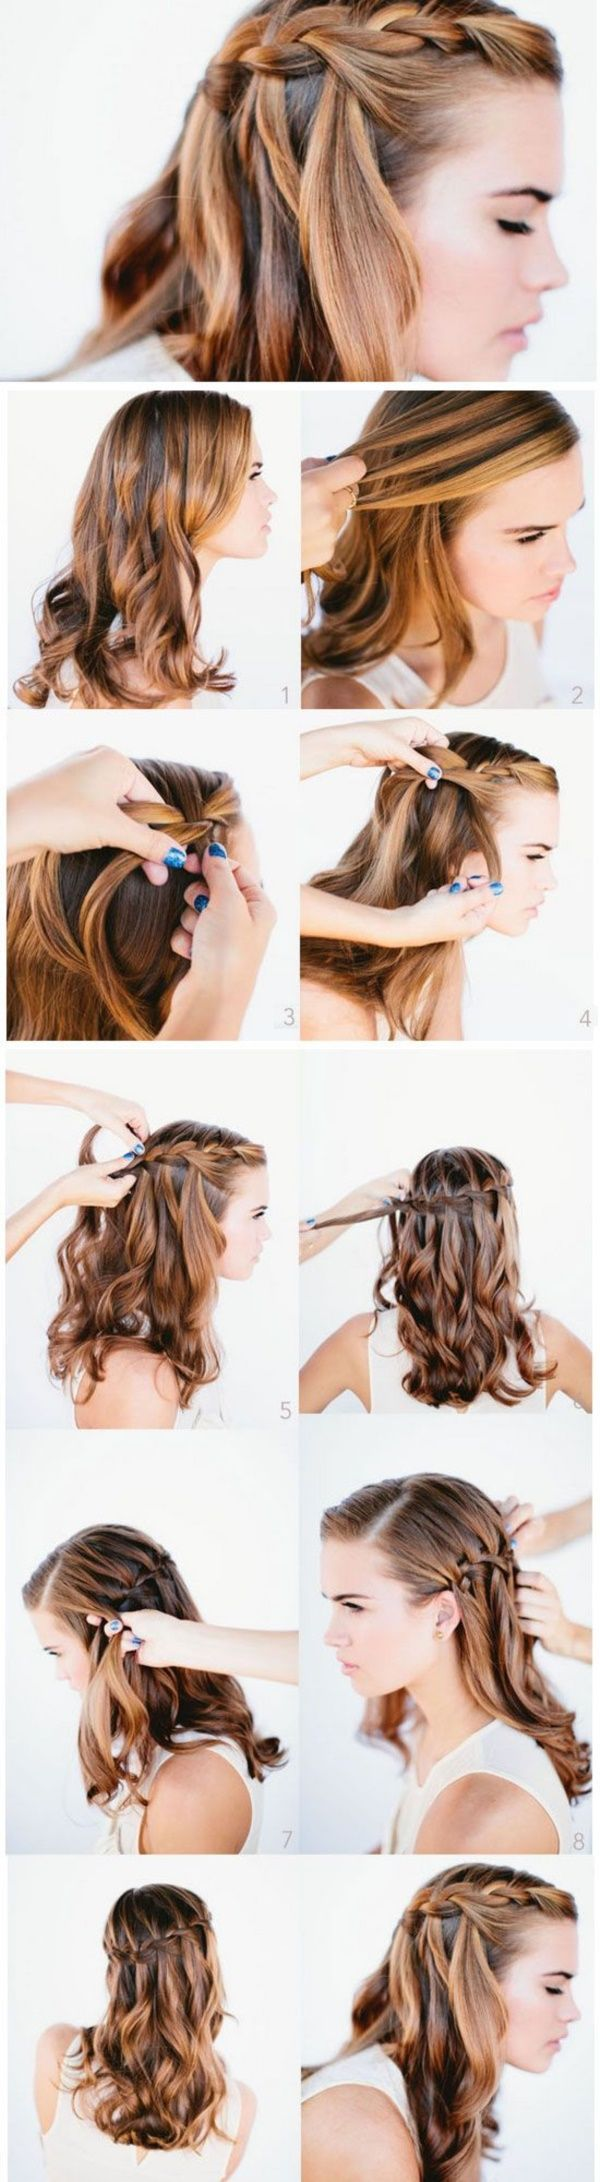 All the listed quick and easy step by step hairstyles for girls are